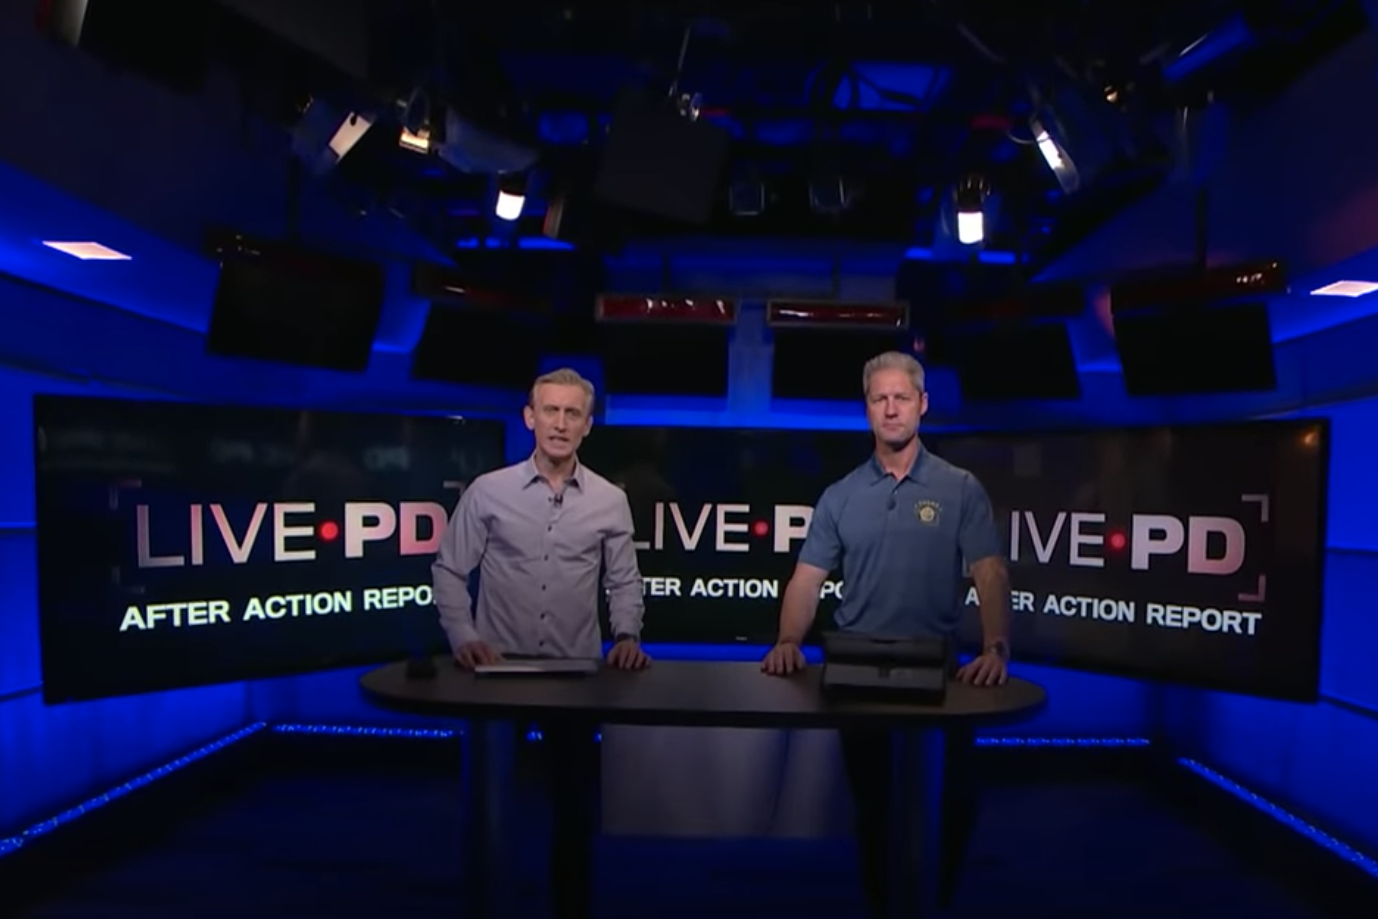 Live PD removed from A&E schedule in wake of George Floyd protests